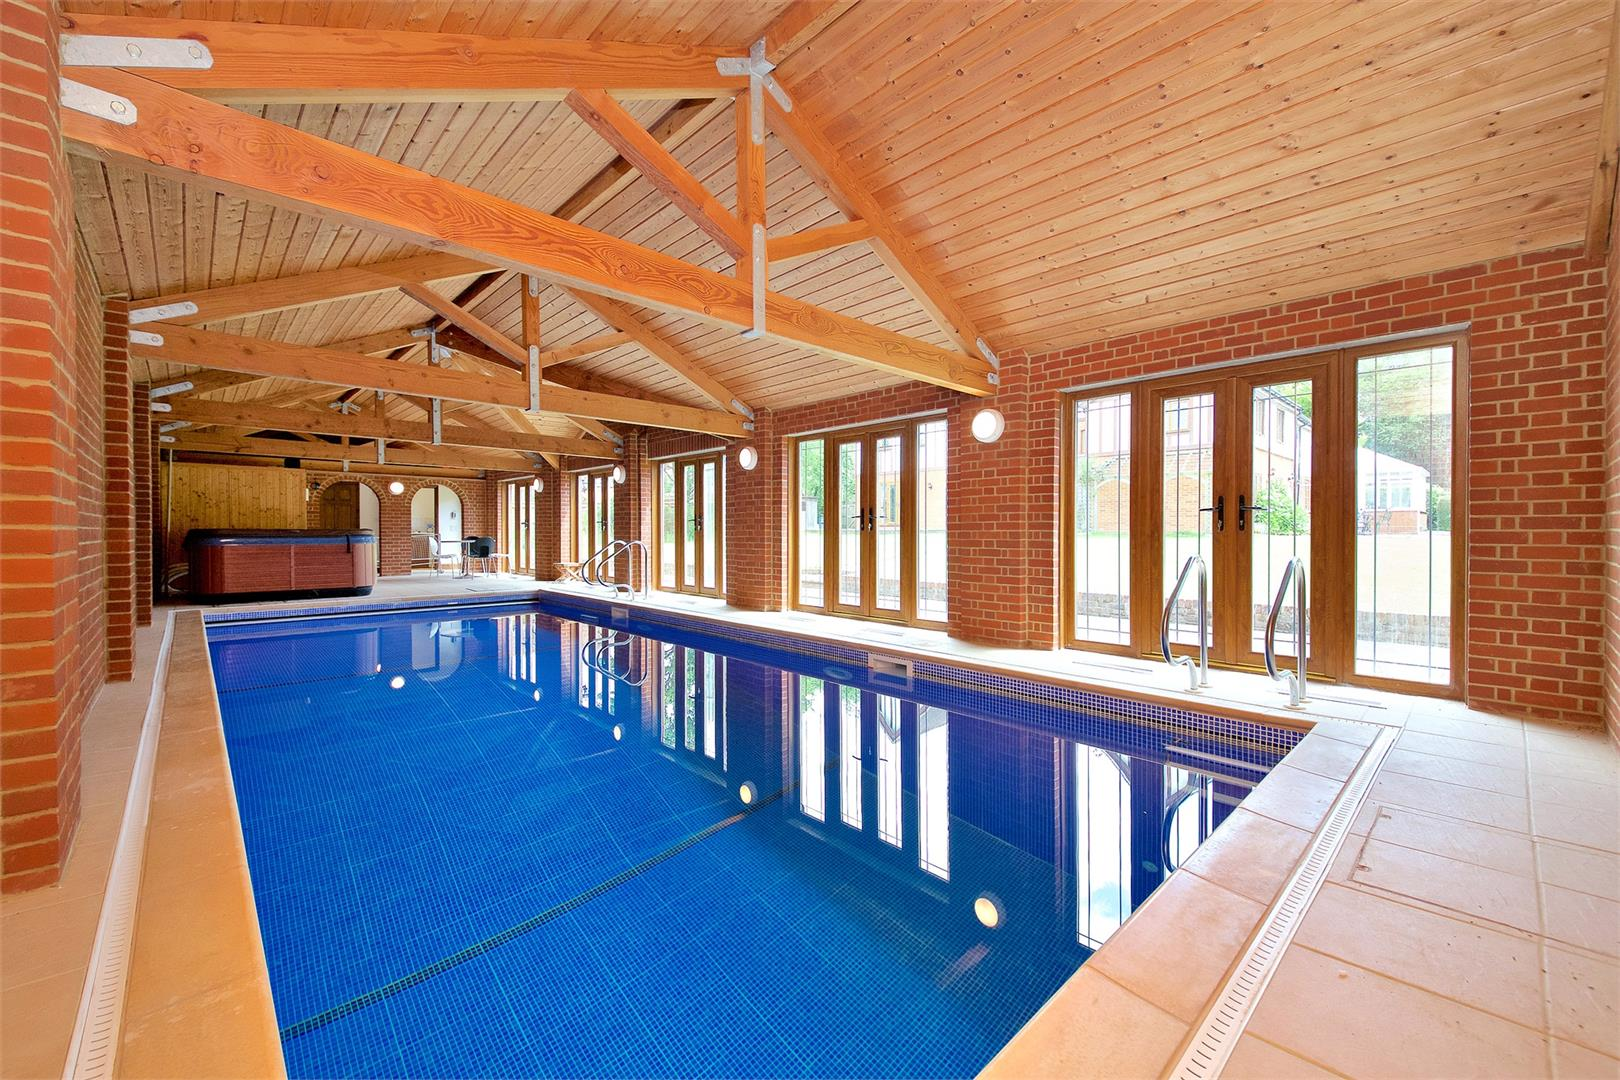 6 bed to rent in Elstree - (Property Image 12)